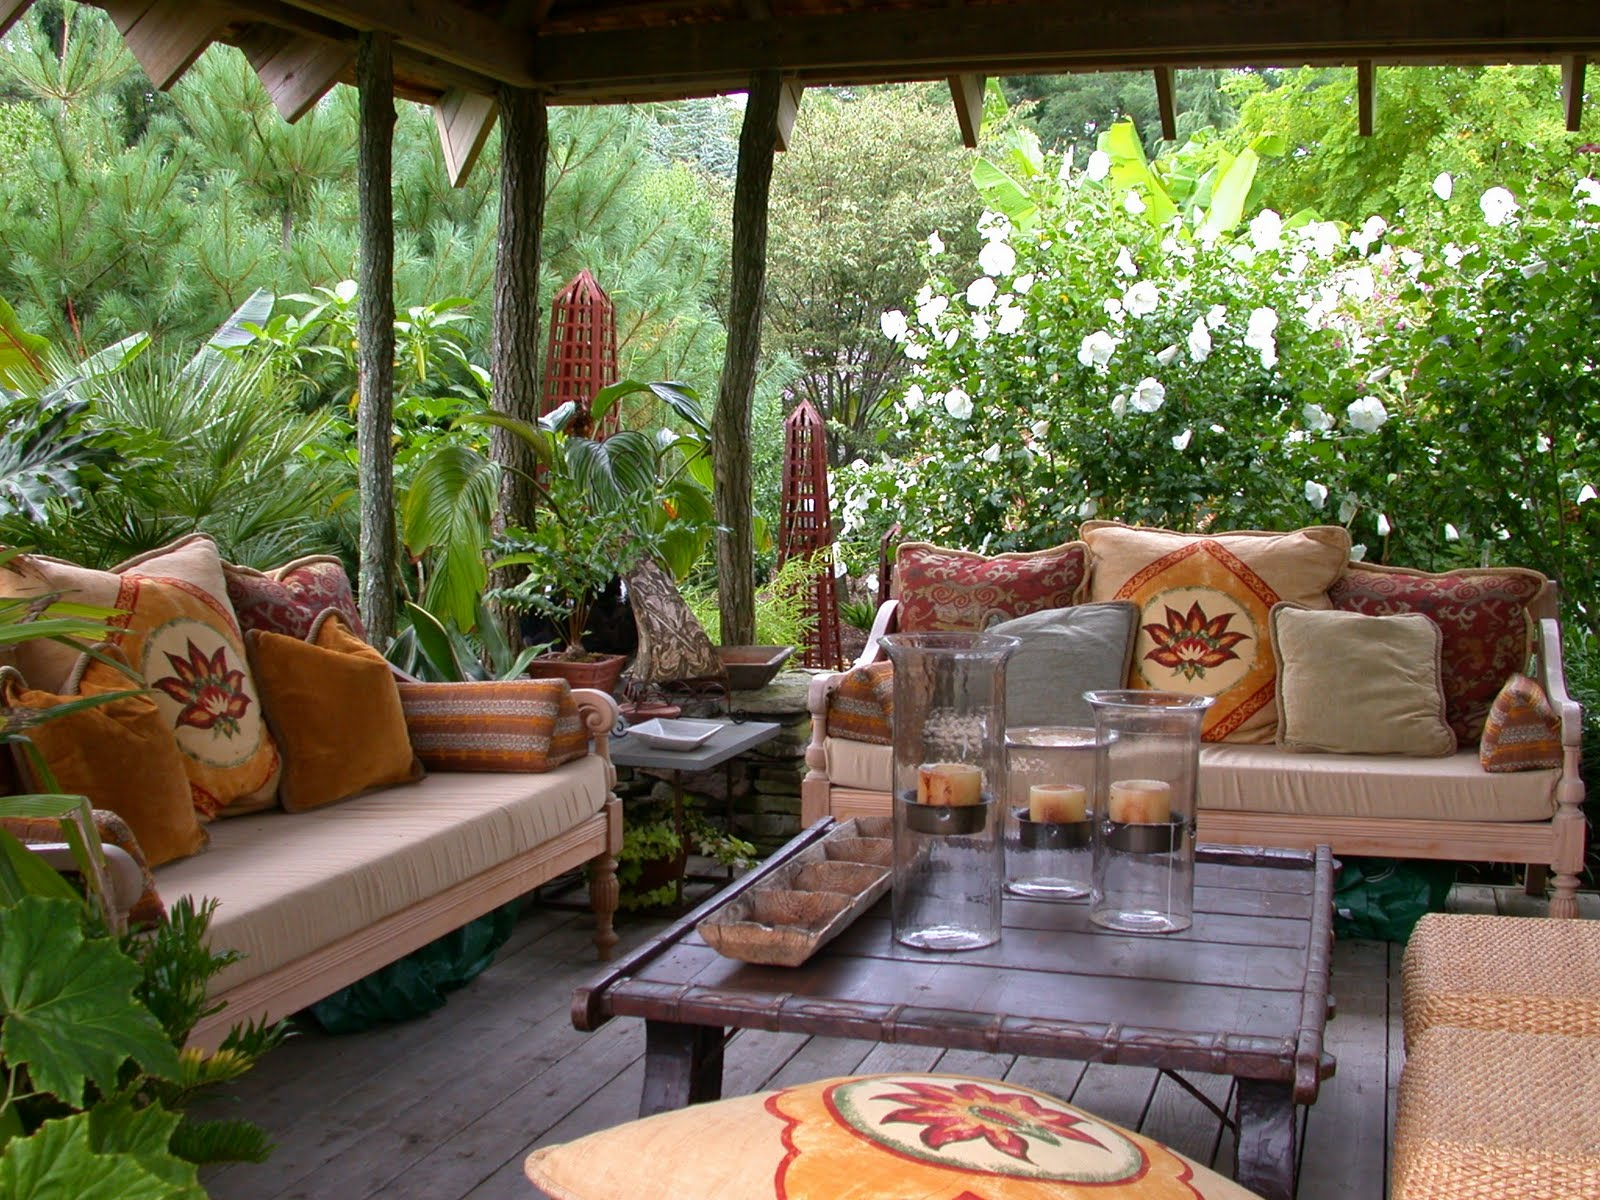 Patio ideas for style living 25